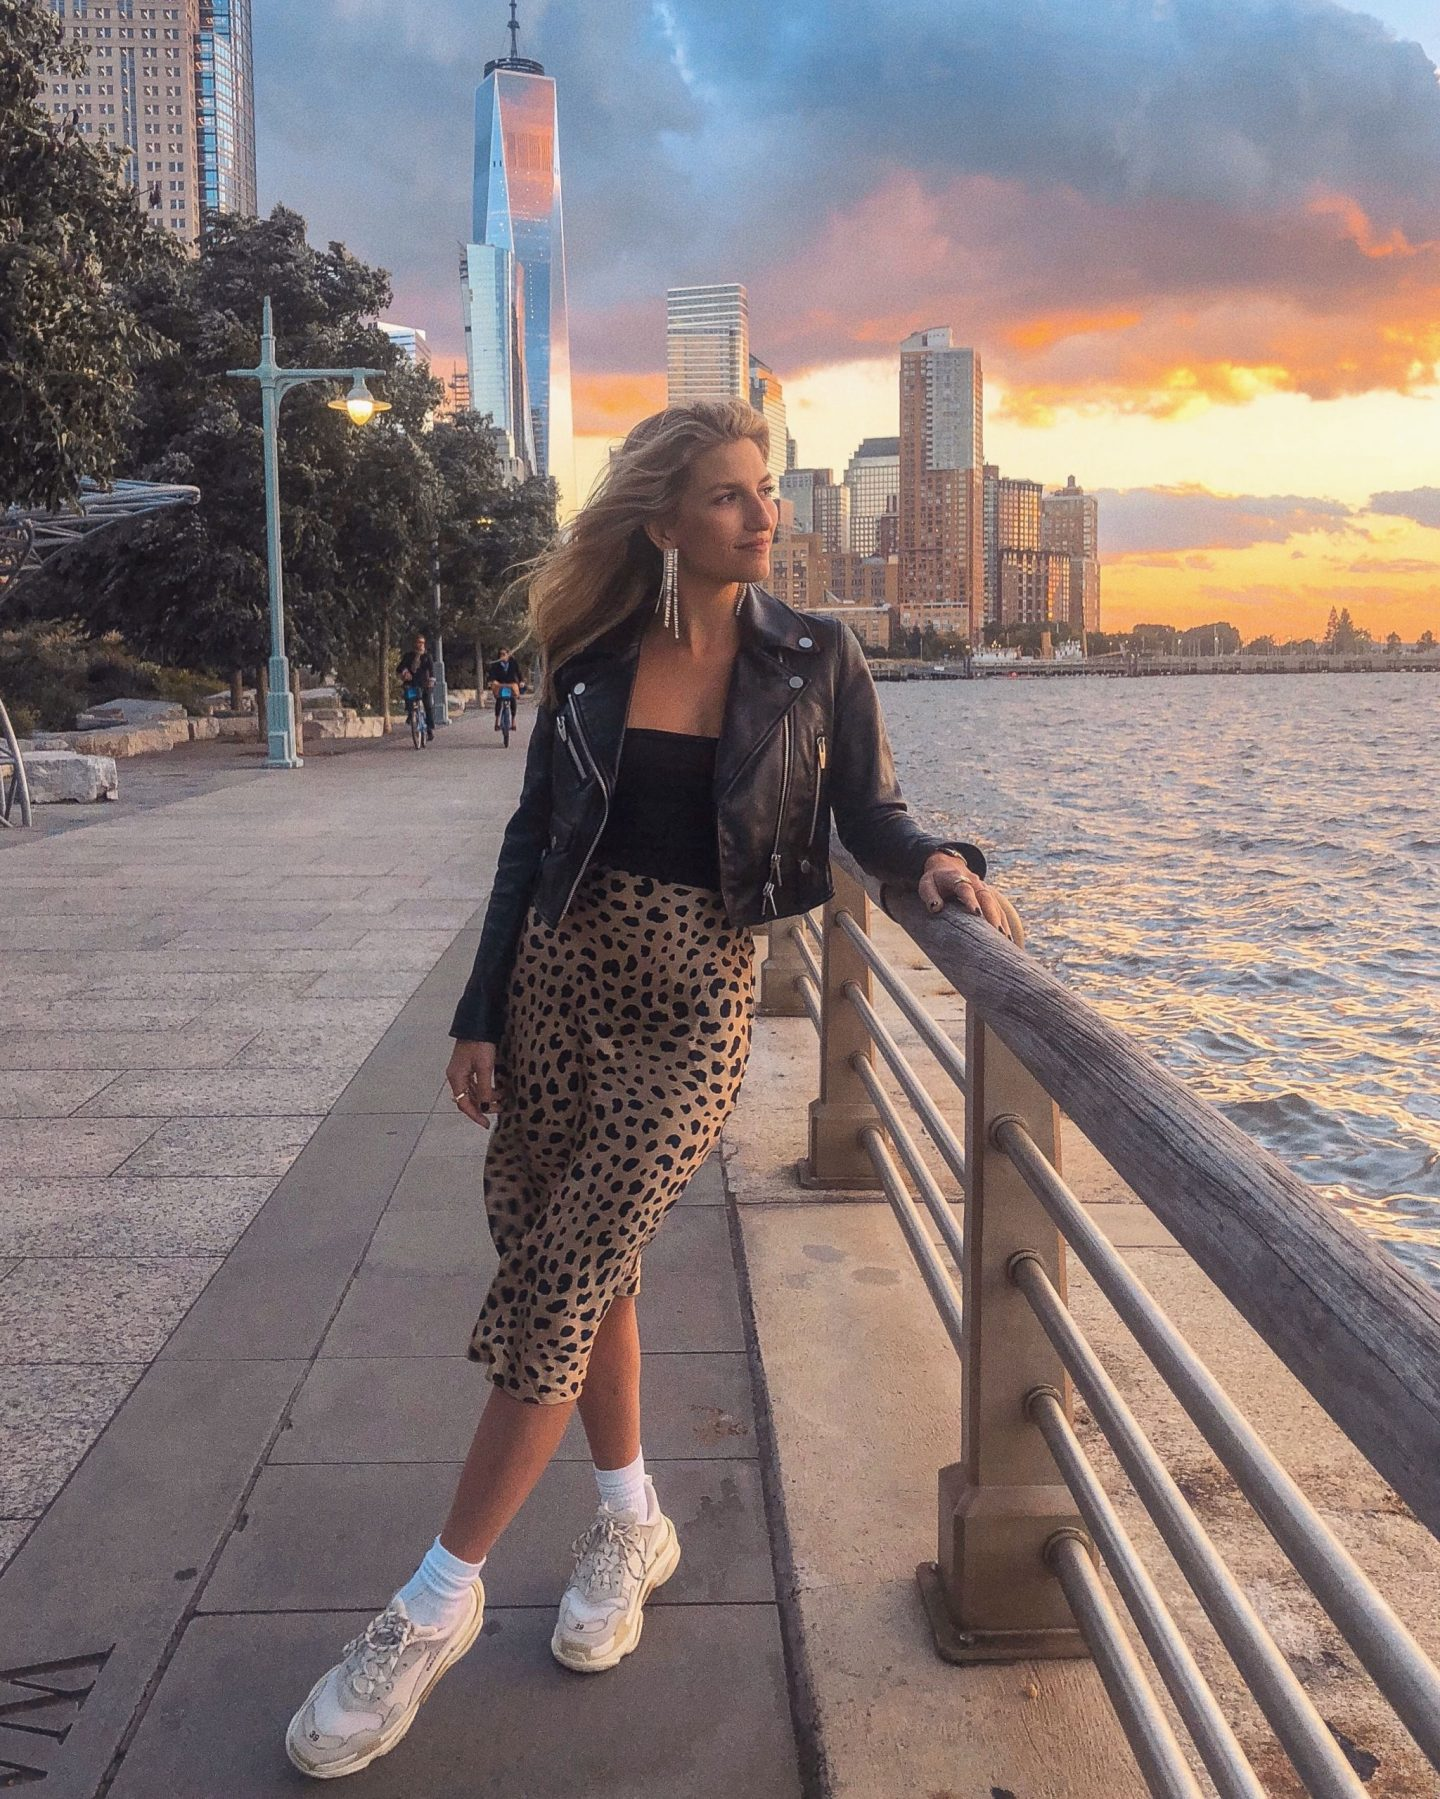 Cassandra DiMicco, Cass DiMicco, Dressed For Dreams, NYC, New York City, New York, Street Style NYC, Street Style 2018, NYC Street Style, NYC Outfit Inspo Street Style Outfits, 2018 Trends, Summer Style, Summer Outfit Inspo, NYC Fashion Blogger, NYC Fashion Blogger, NYC to do list, NYC to do, NYC bucket list, NYC Instagram Spots, realisation par the Naomi, realisation par leopard silk midi skirt, realisation par leopard skirt, the arrivals NYC, the arrivals NYC clo mini leather jacket, the arrivals NYC leather jacket, clo mini leather jacket, Louis Vuitton lockme backpack, Louis Vuitton backpack, tribeca, soho, fall fashion, fall outfit inspo, fall outfit, balenciaga triple s sneakers